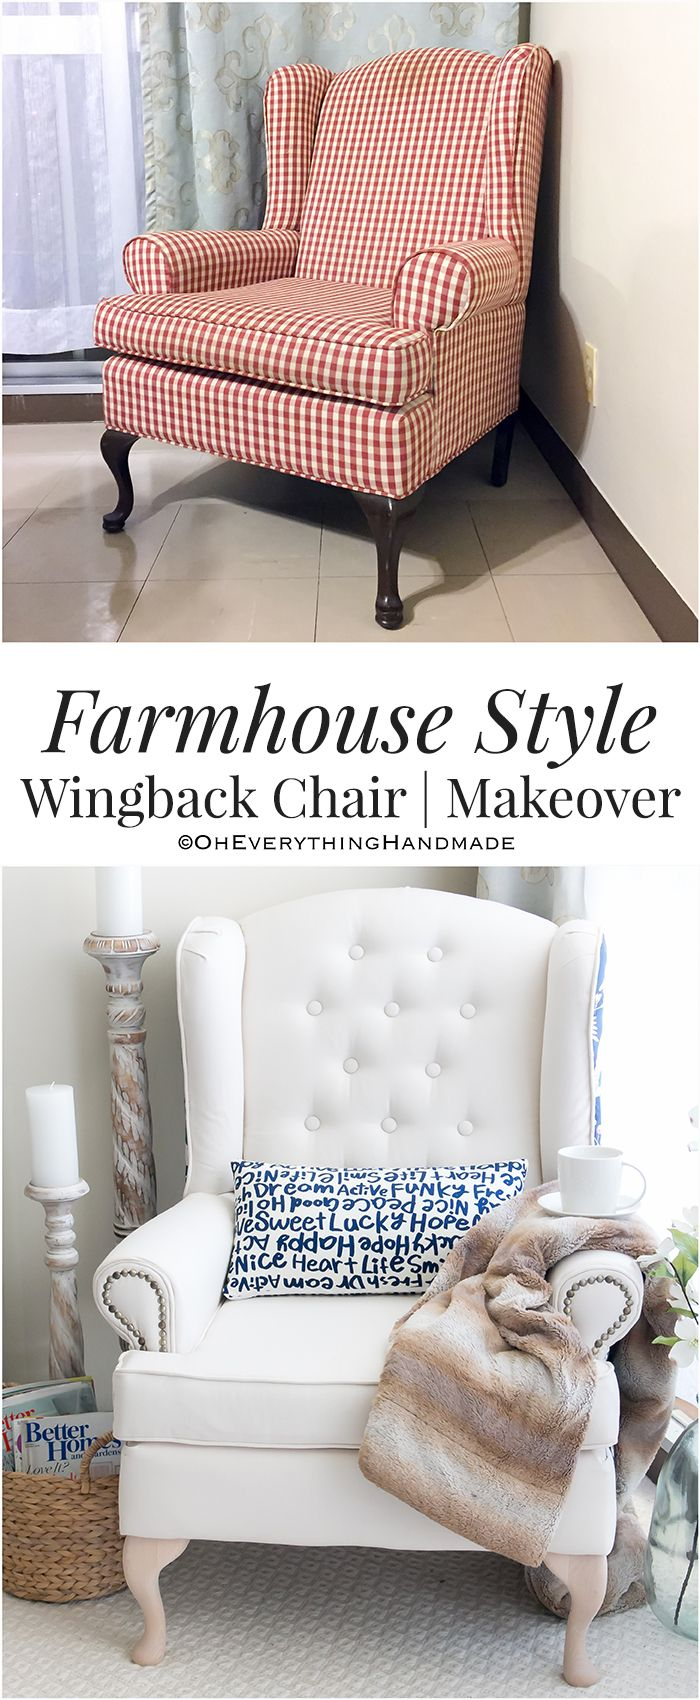 Farmhouse Style Wingback Chair Makeover   Chair makeover, Wingback ...